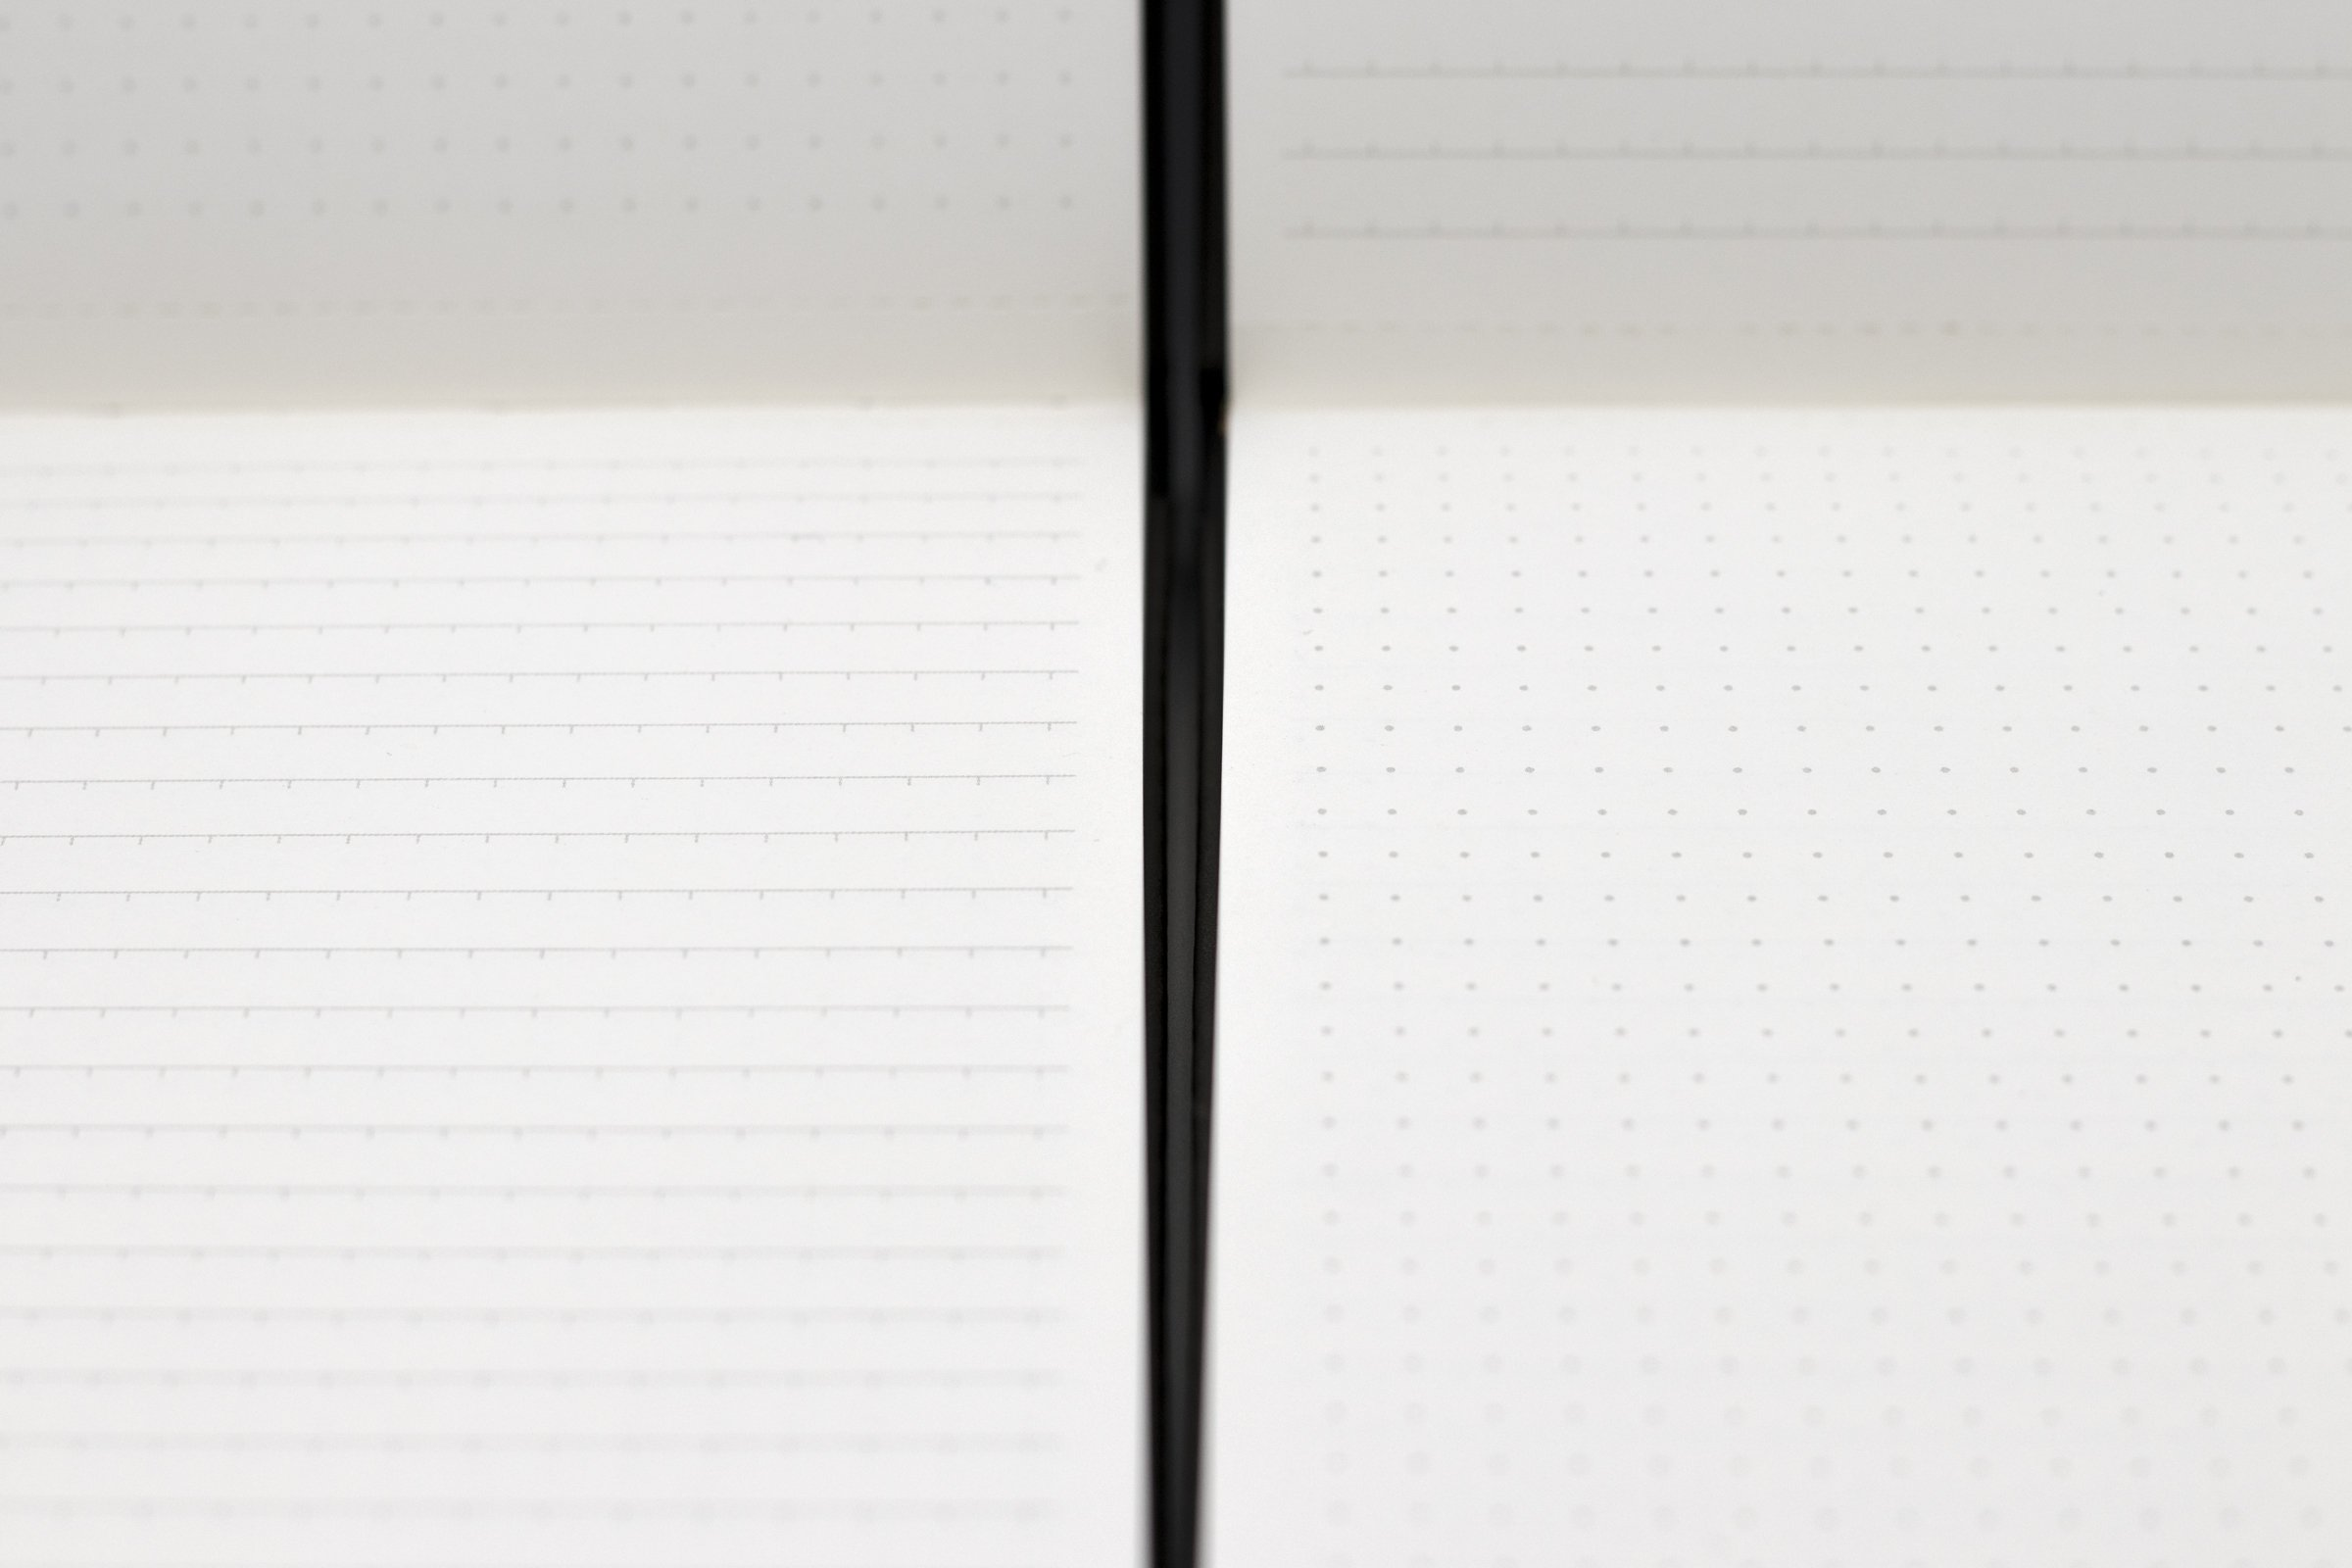 code&quill Compass Notebook Premium Reporter Style Notebook (4.1'' x 7.7'') (Layout: Indentation Rule (Front Pages), Dot Grid (Back Pages)) (Gray) by Code&Quill (Image #4)